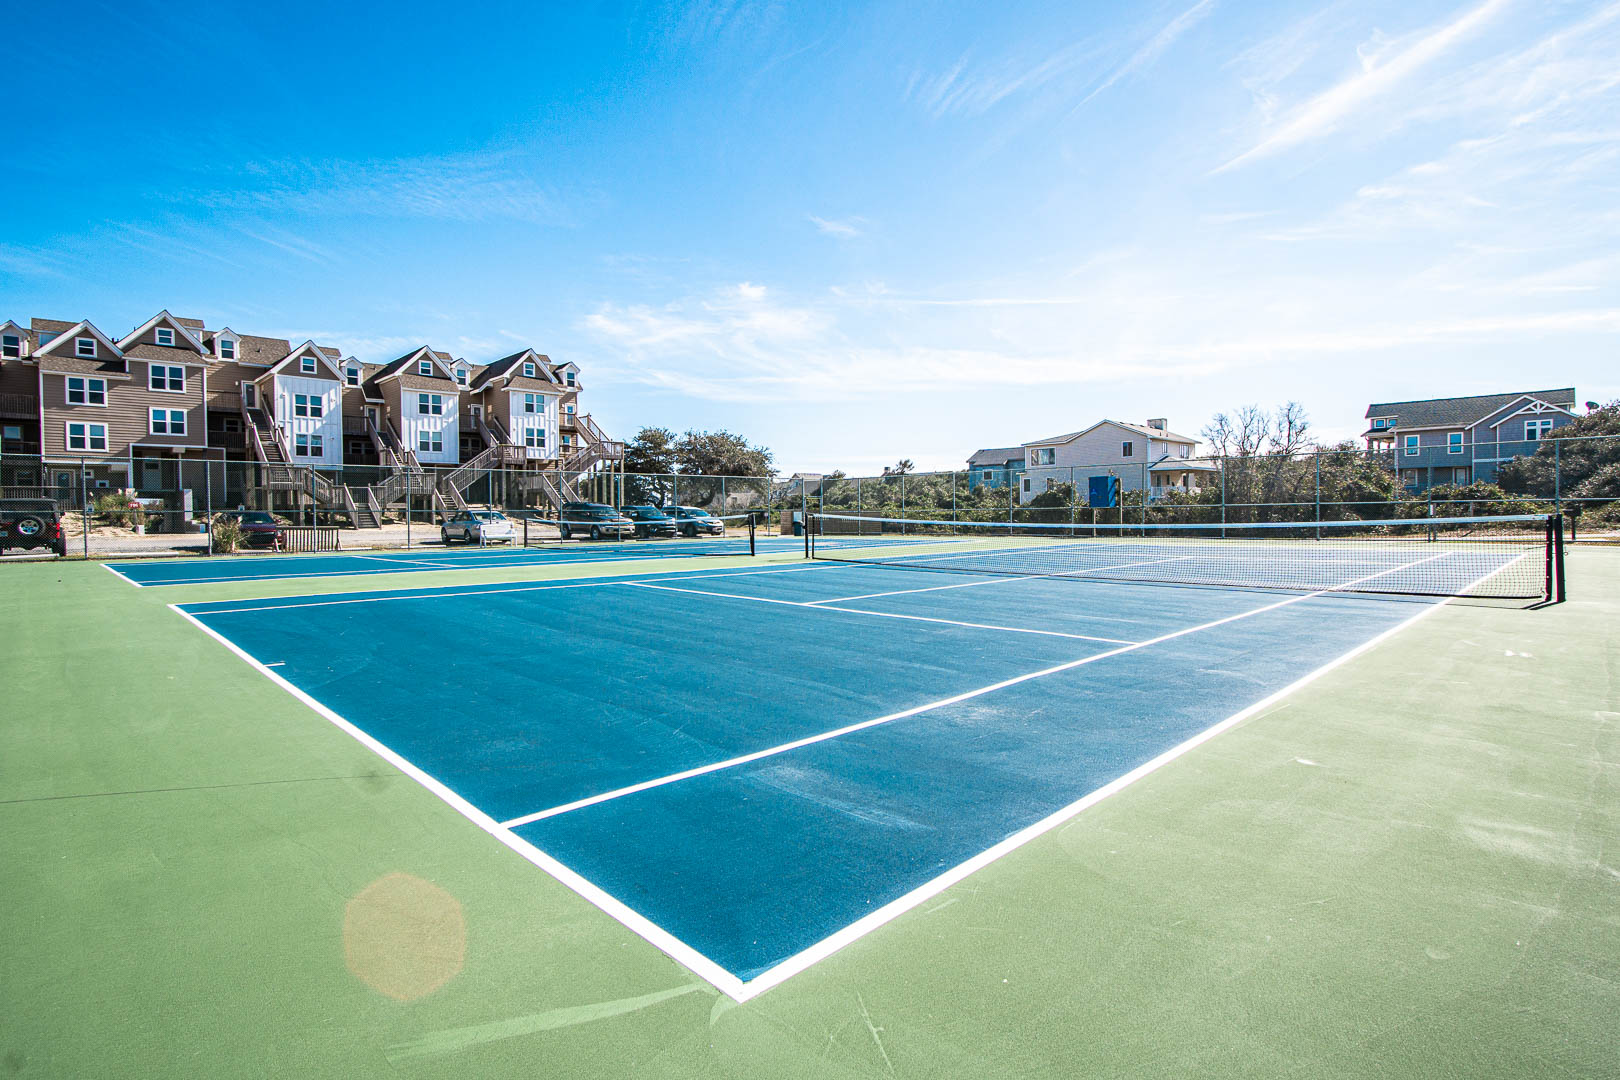 A tennis court available at VRI's Barrier Island Station in North Carolina.